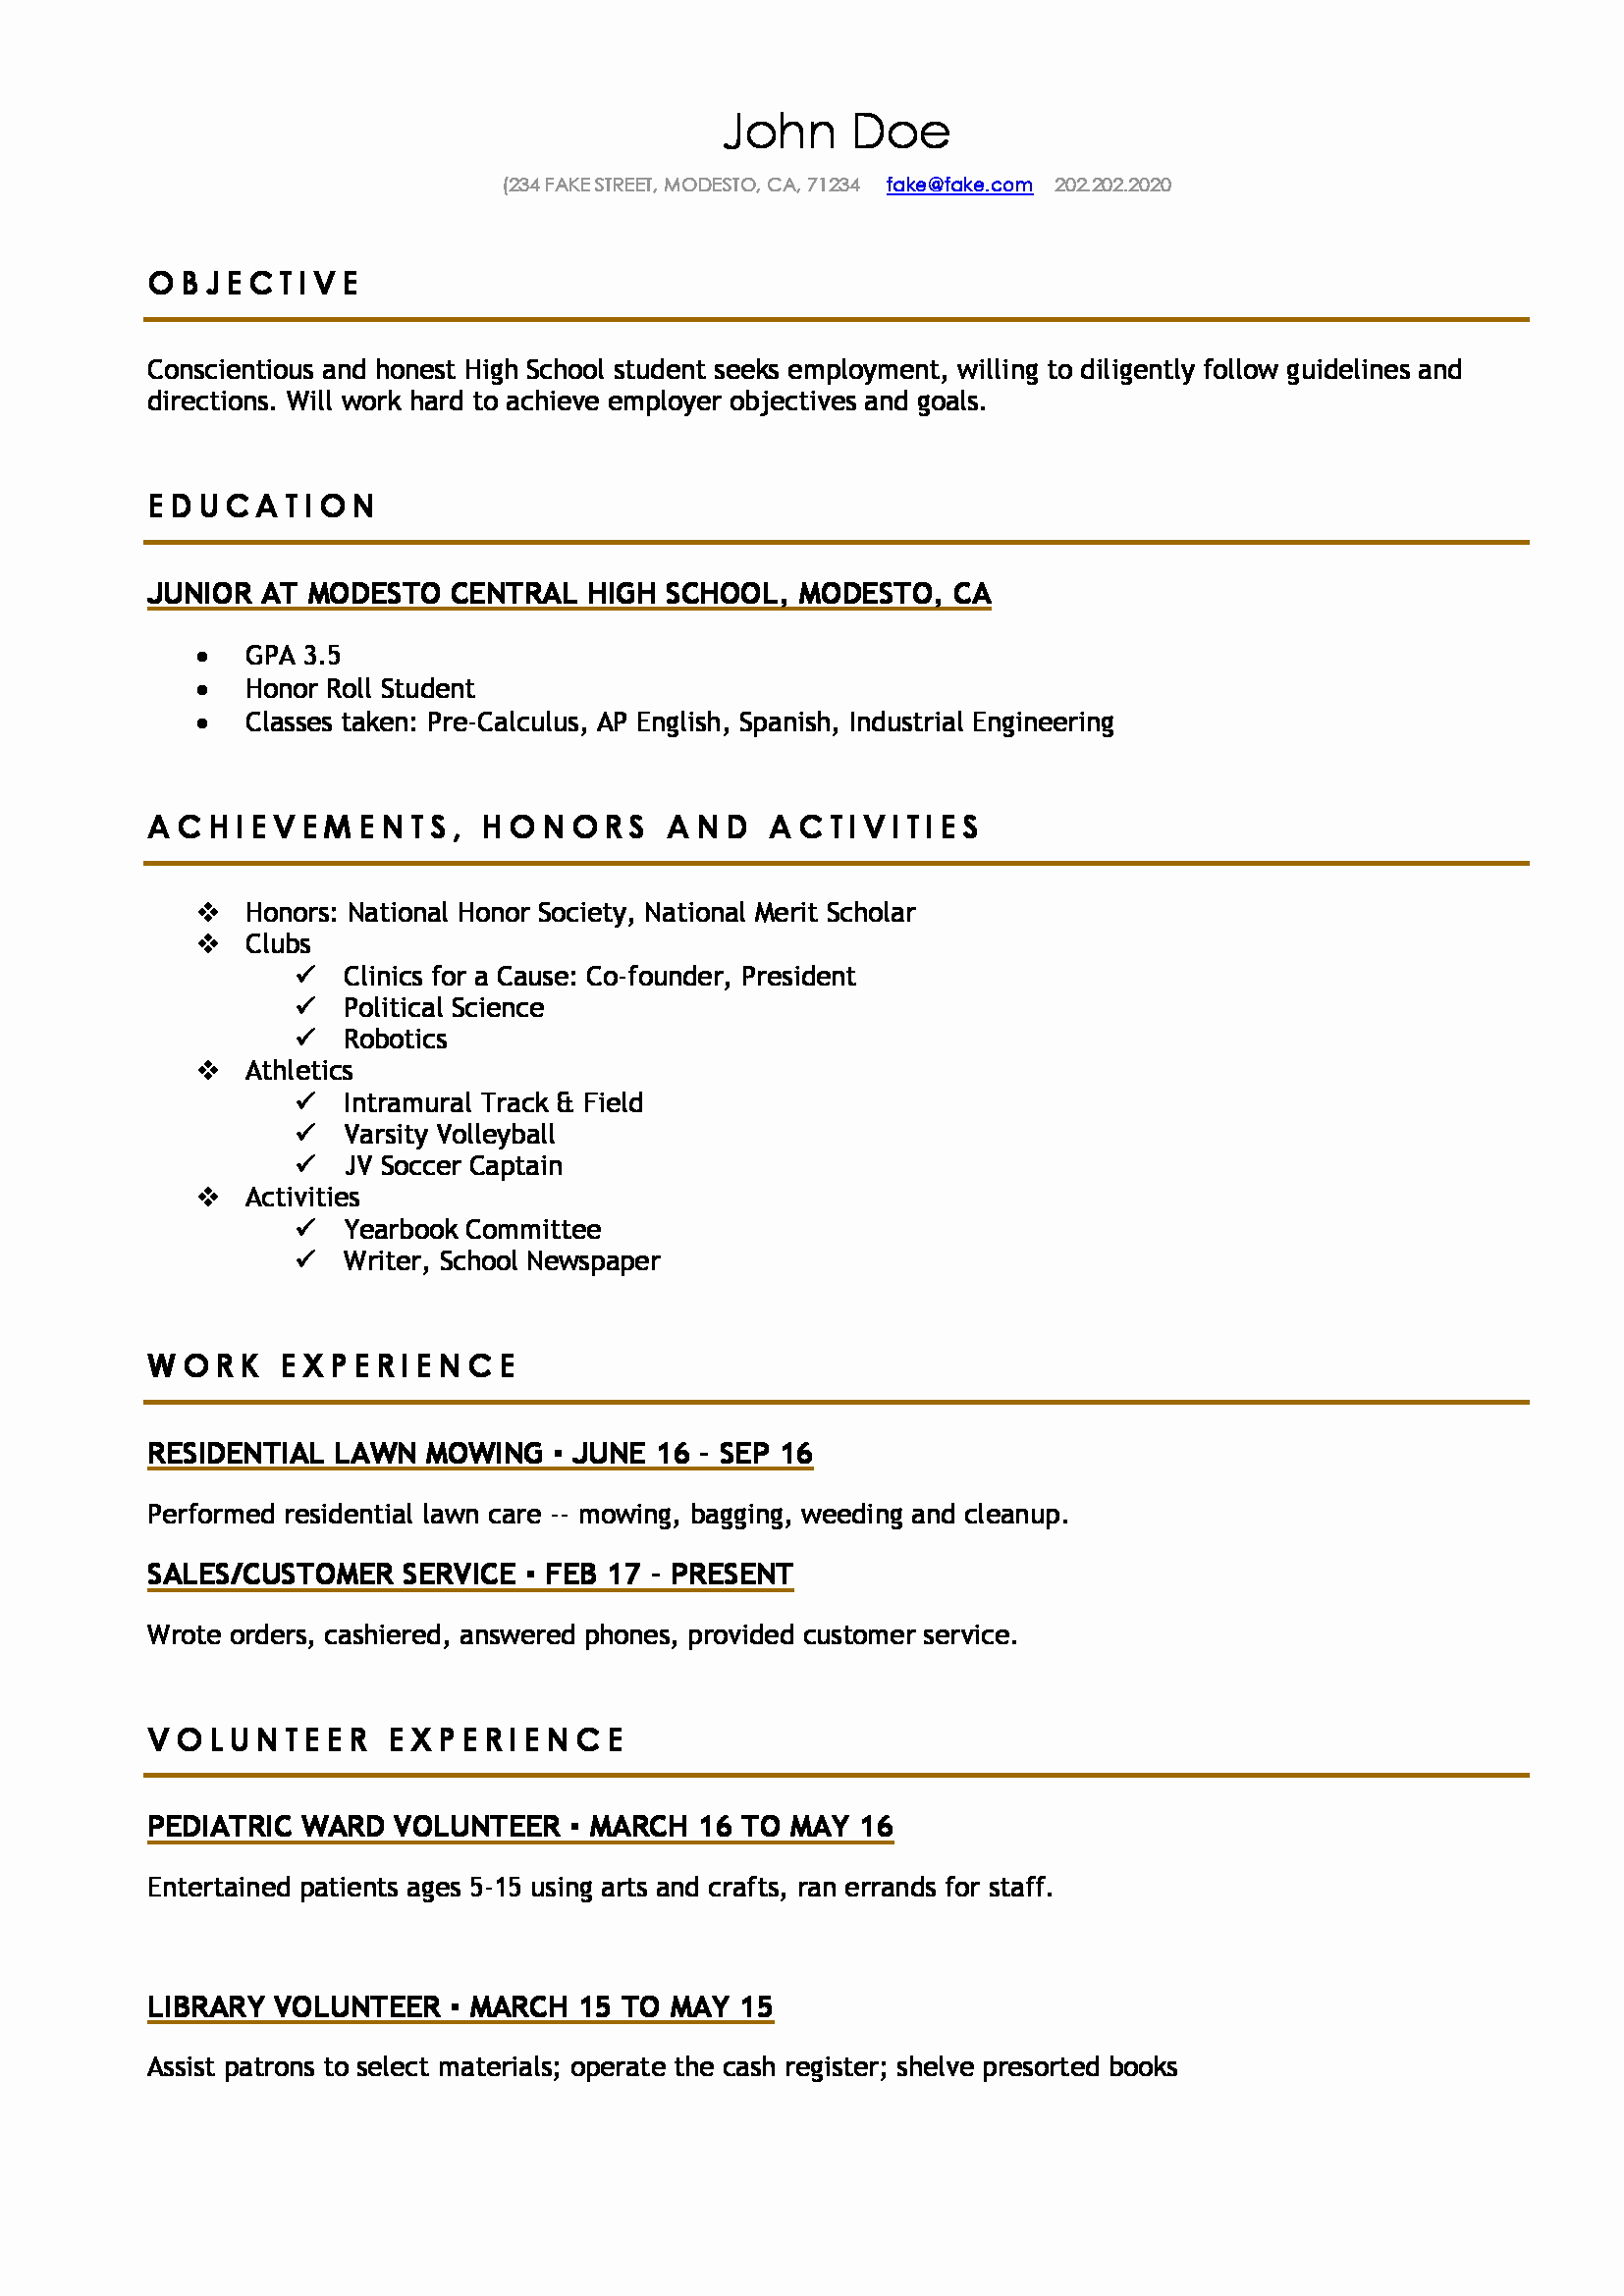 A Template for A Resume Luxury High School Resume Resumes Perfect for High School Students